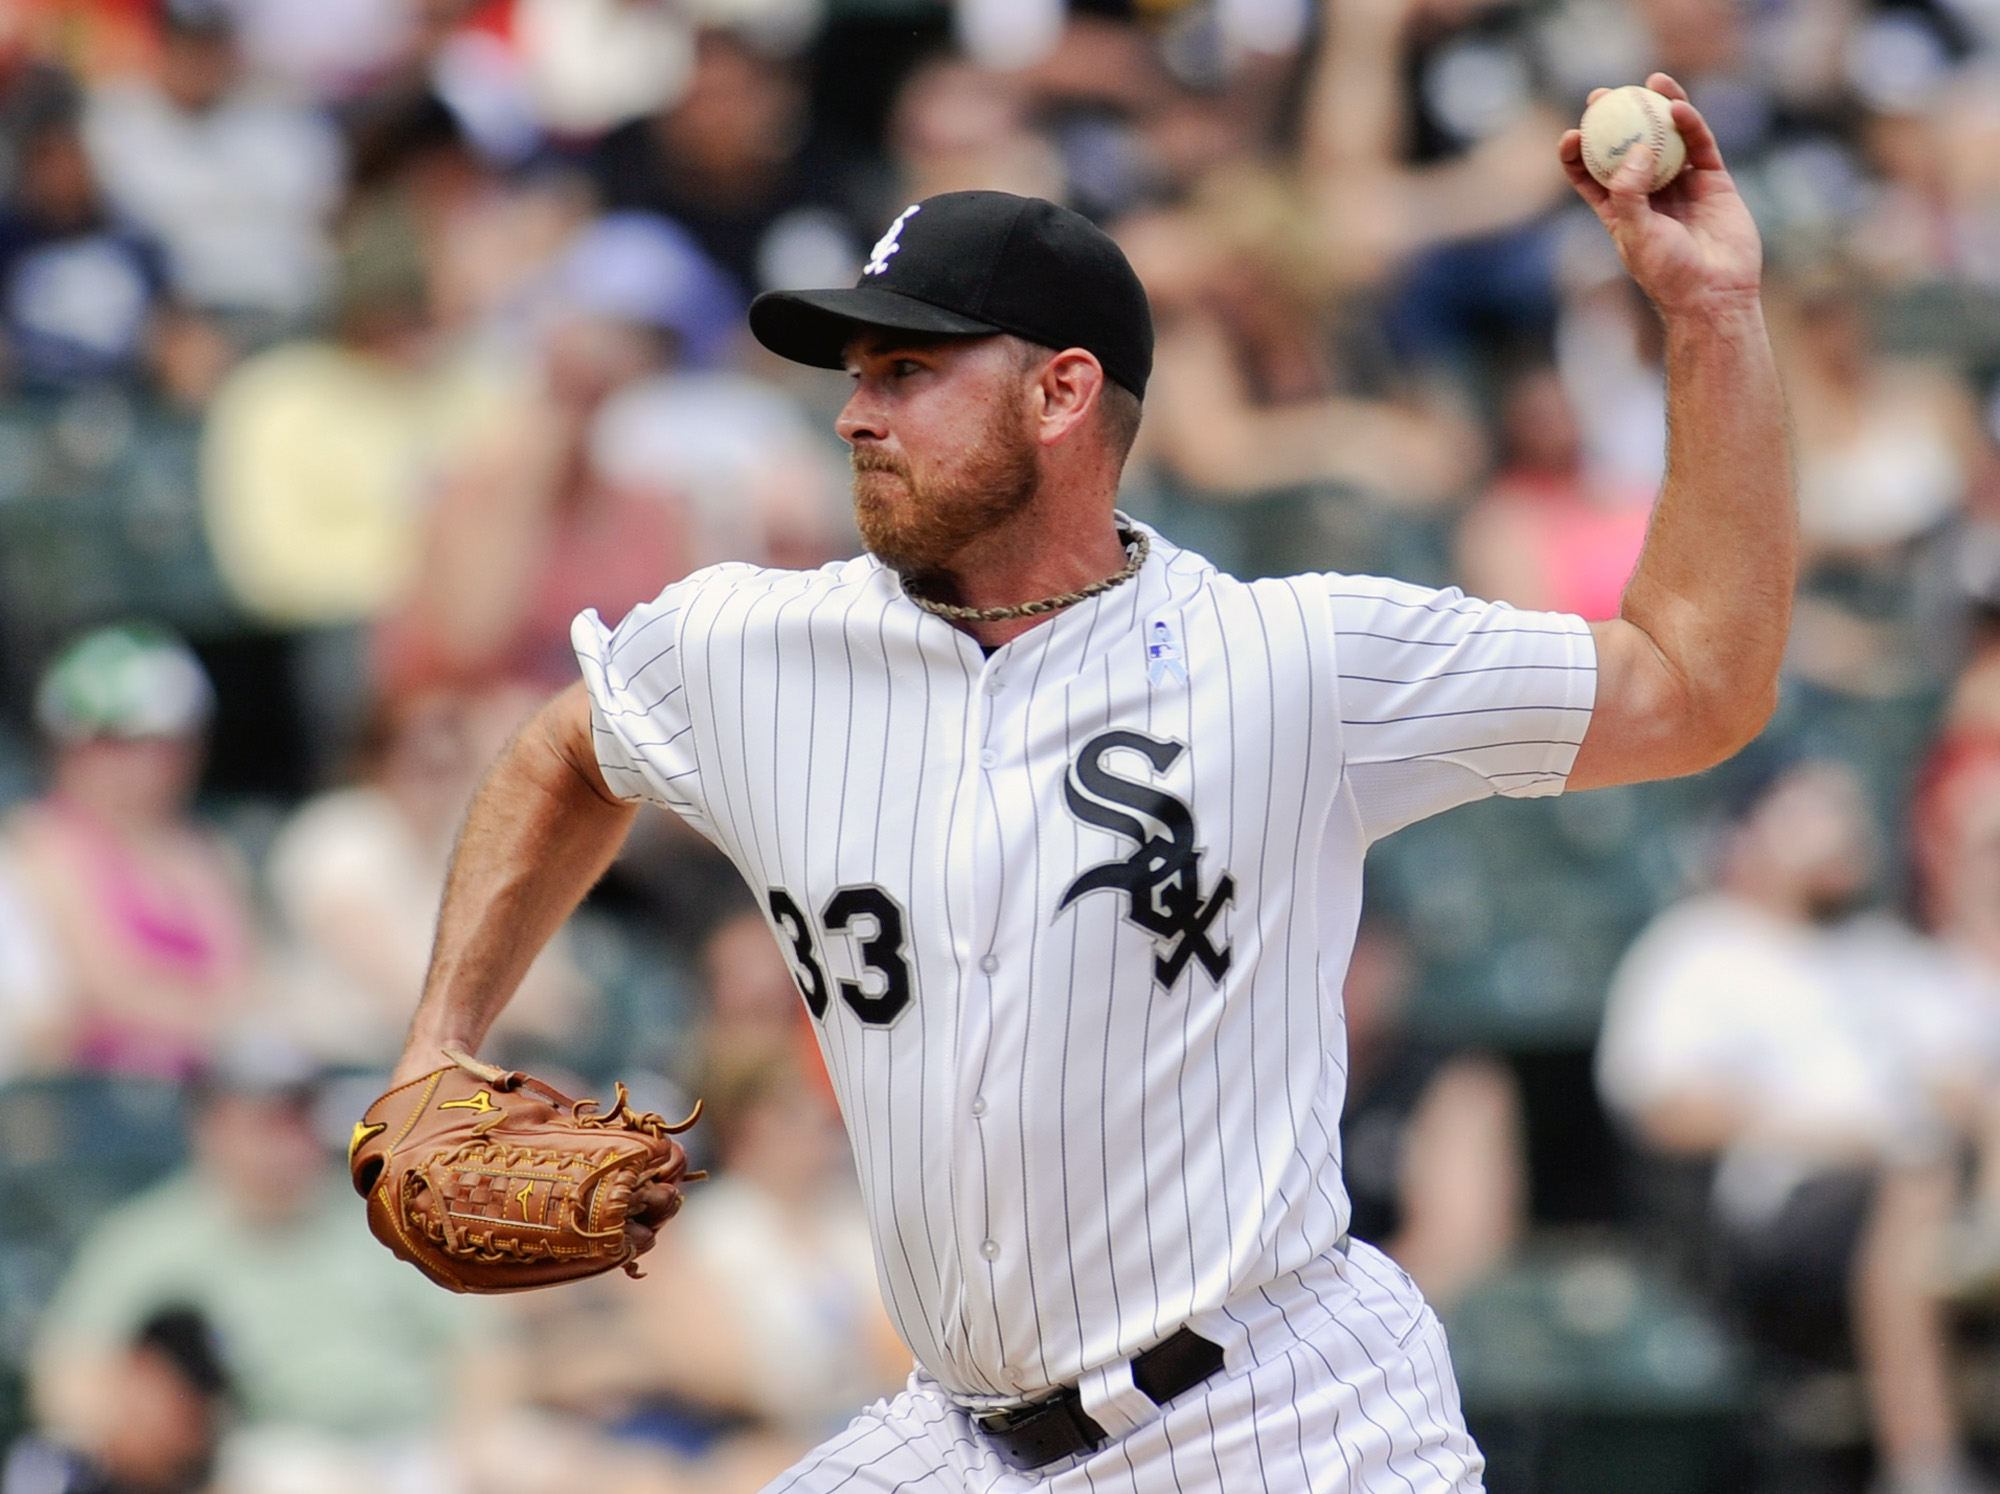 Chicago White Sox pitcher Zach Duke delivers against the Texas Rangers during a baseball game on Sunday, June 21, 2015, in Chicago. (AP Photo/Matt Marton)